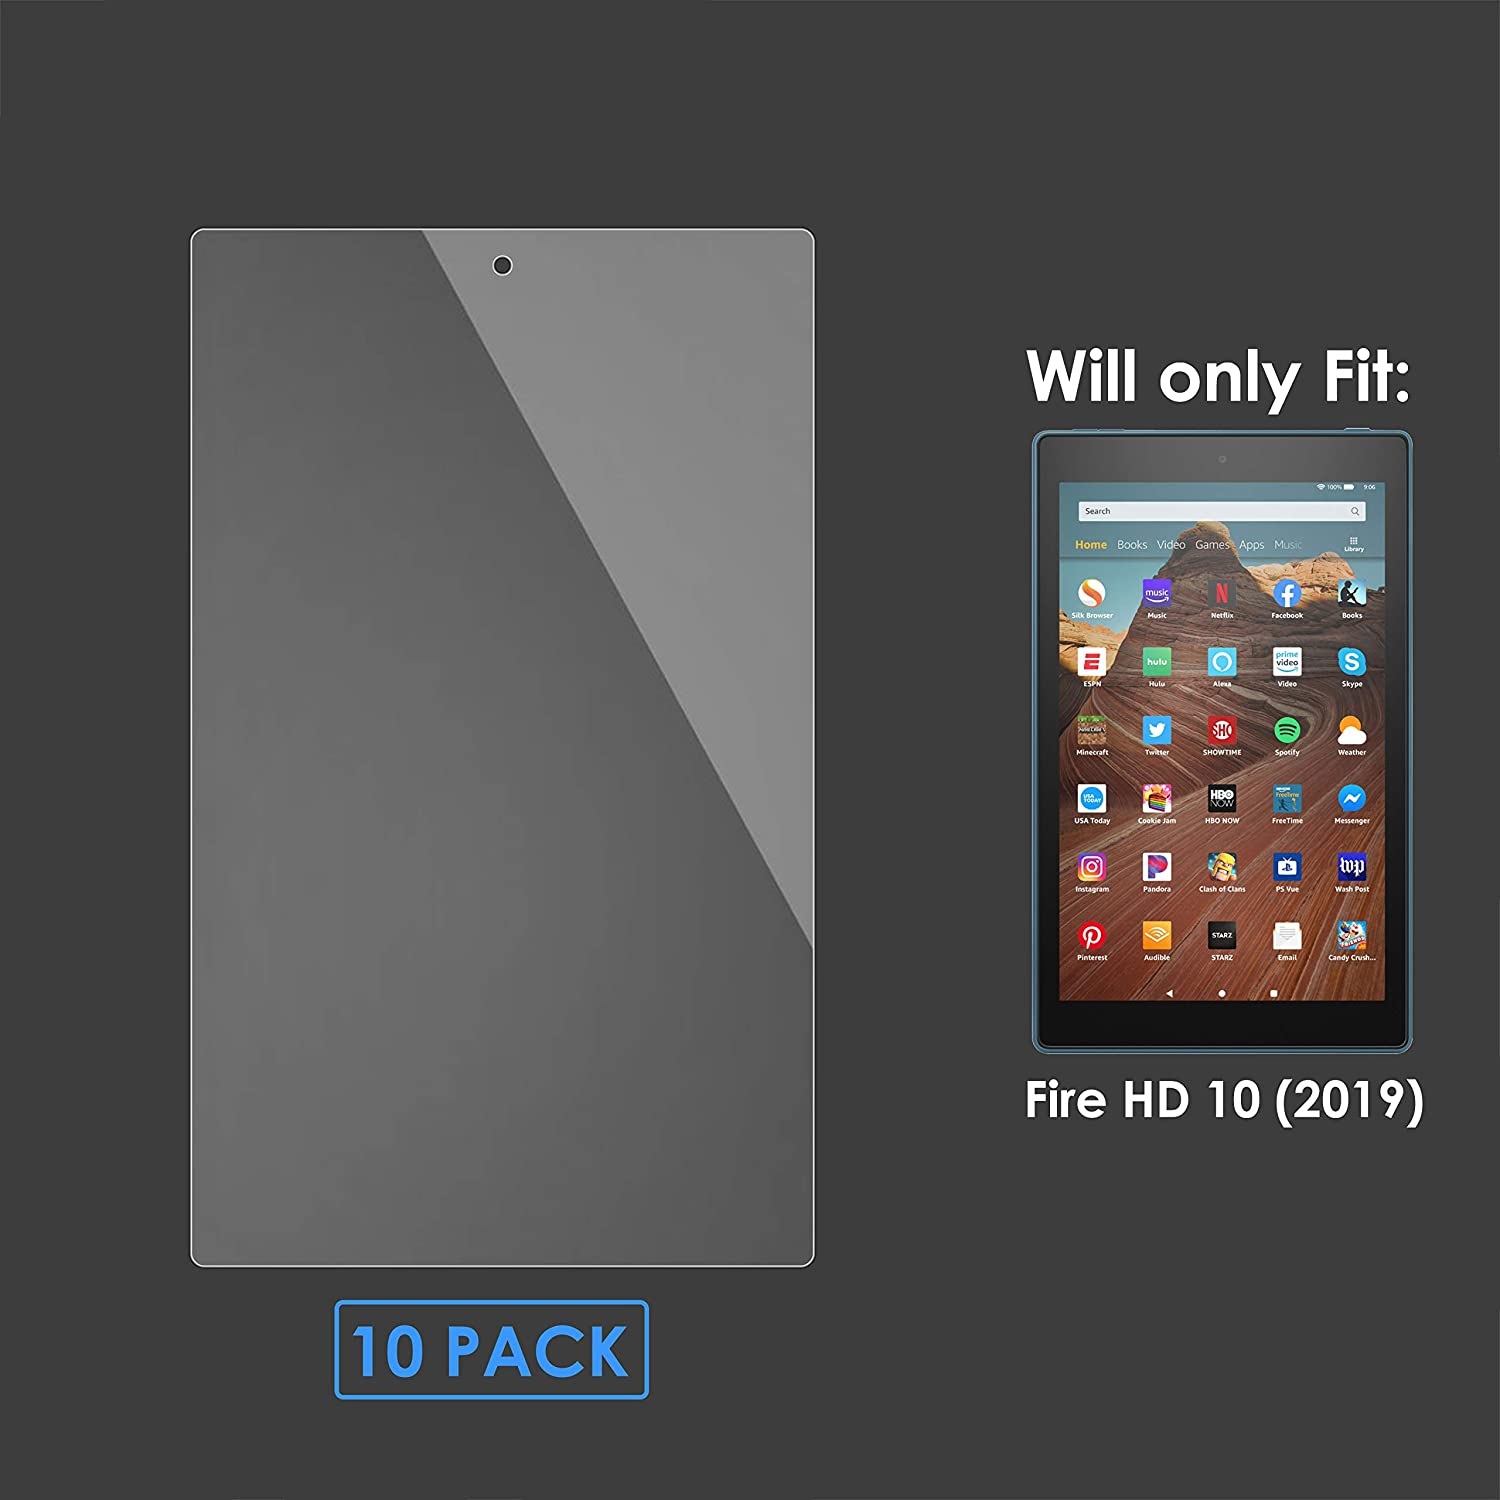 Edge to Edge Screen Coverage Shatterproof Fire HD 10 Screen Protector Forefront Cases Screen Protector for Fire HD 10 2019-5 Pack HD Clear Ultra Thin 0.1mm PET